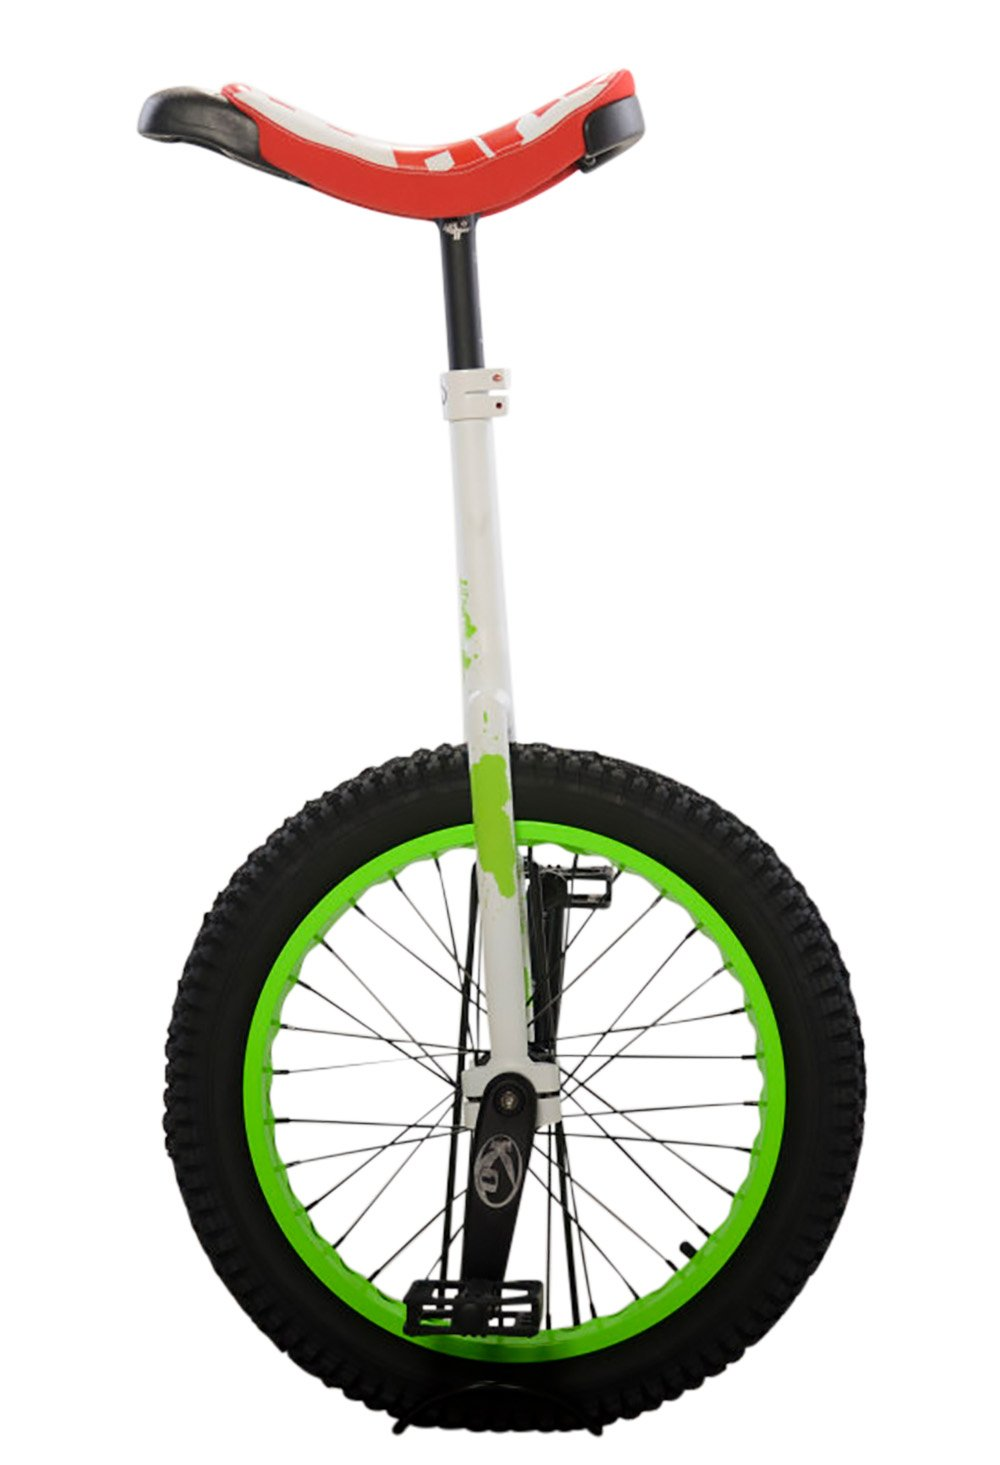 Koxx Troll2 20 Trials Unicycle, Red/White with Green Rims and Black Pedals by Koxx